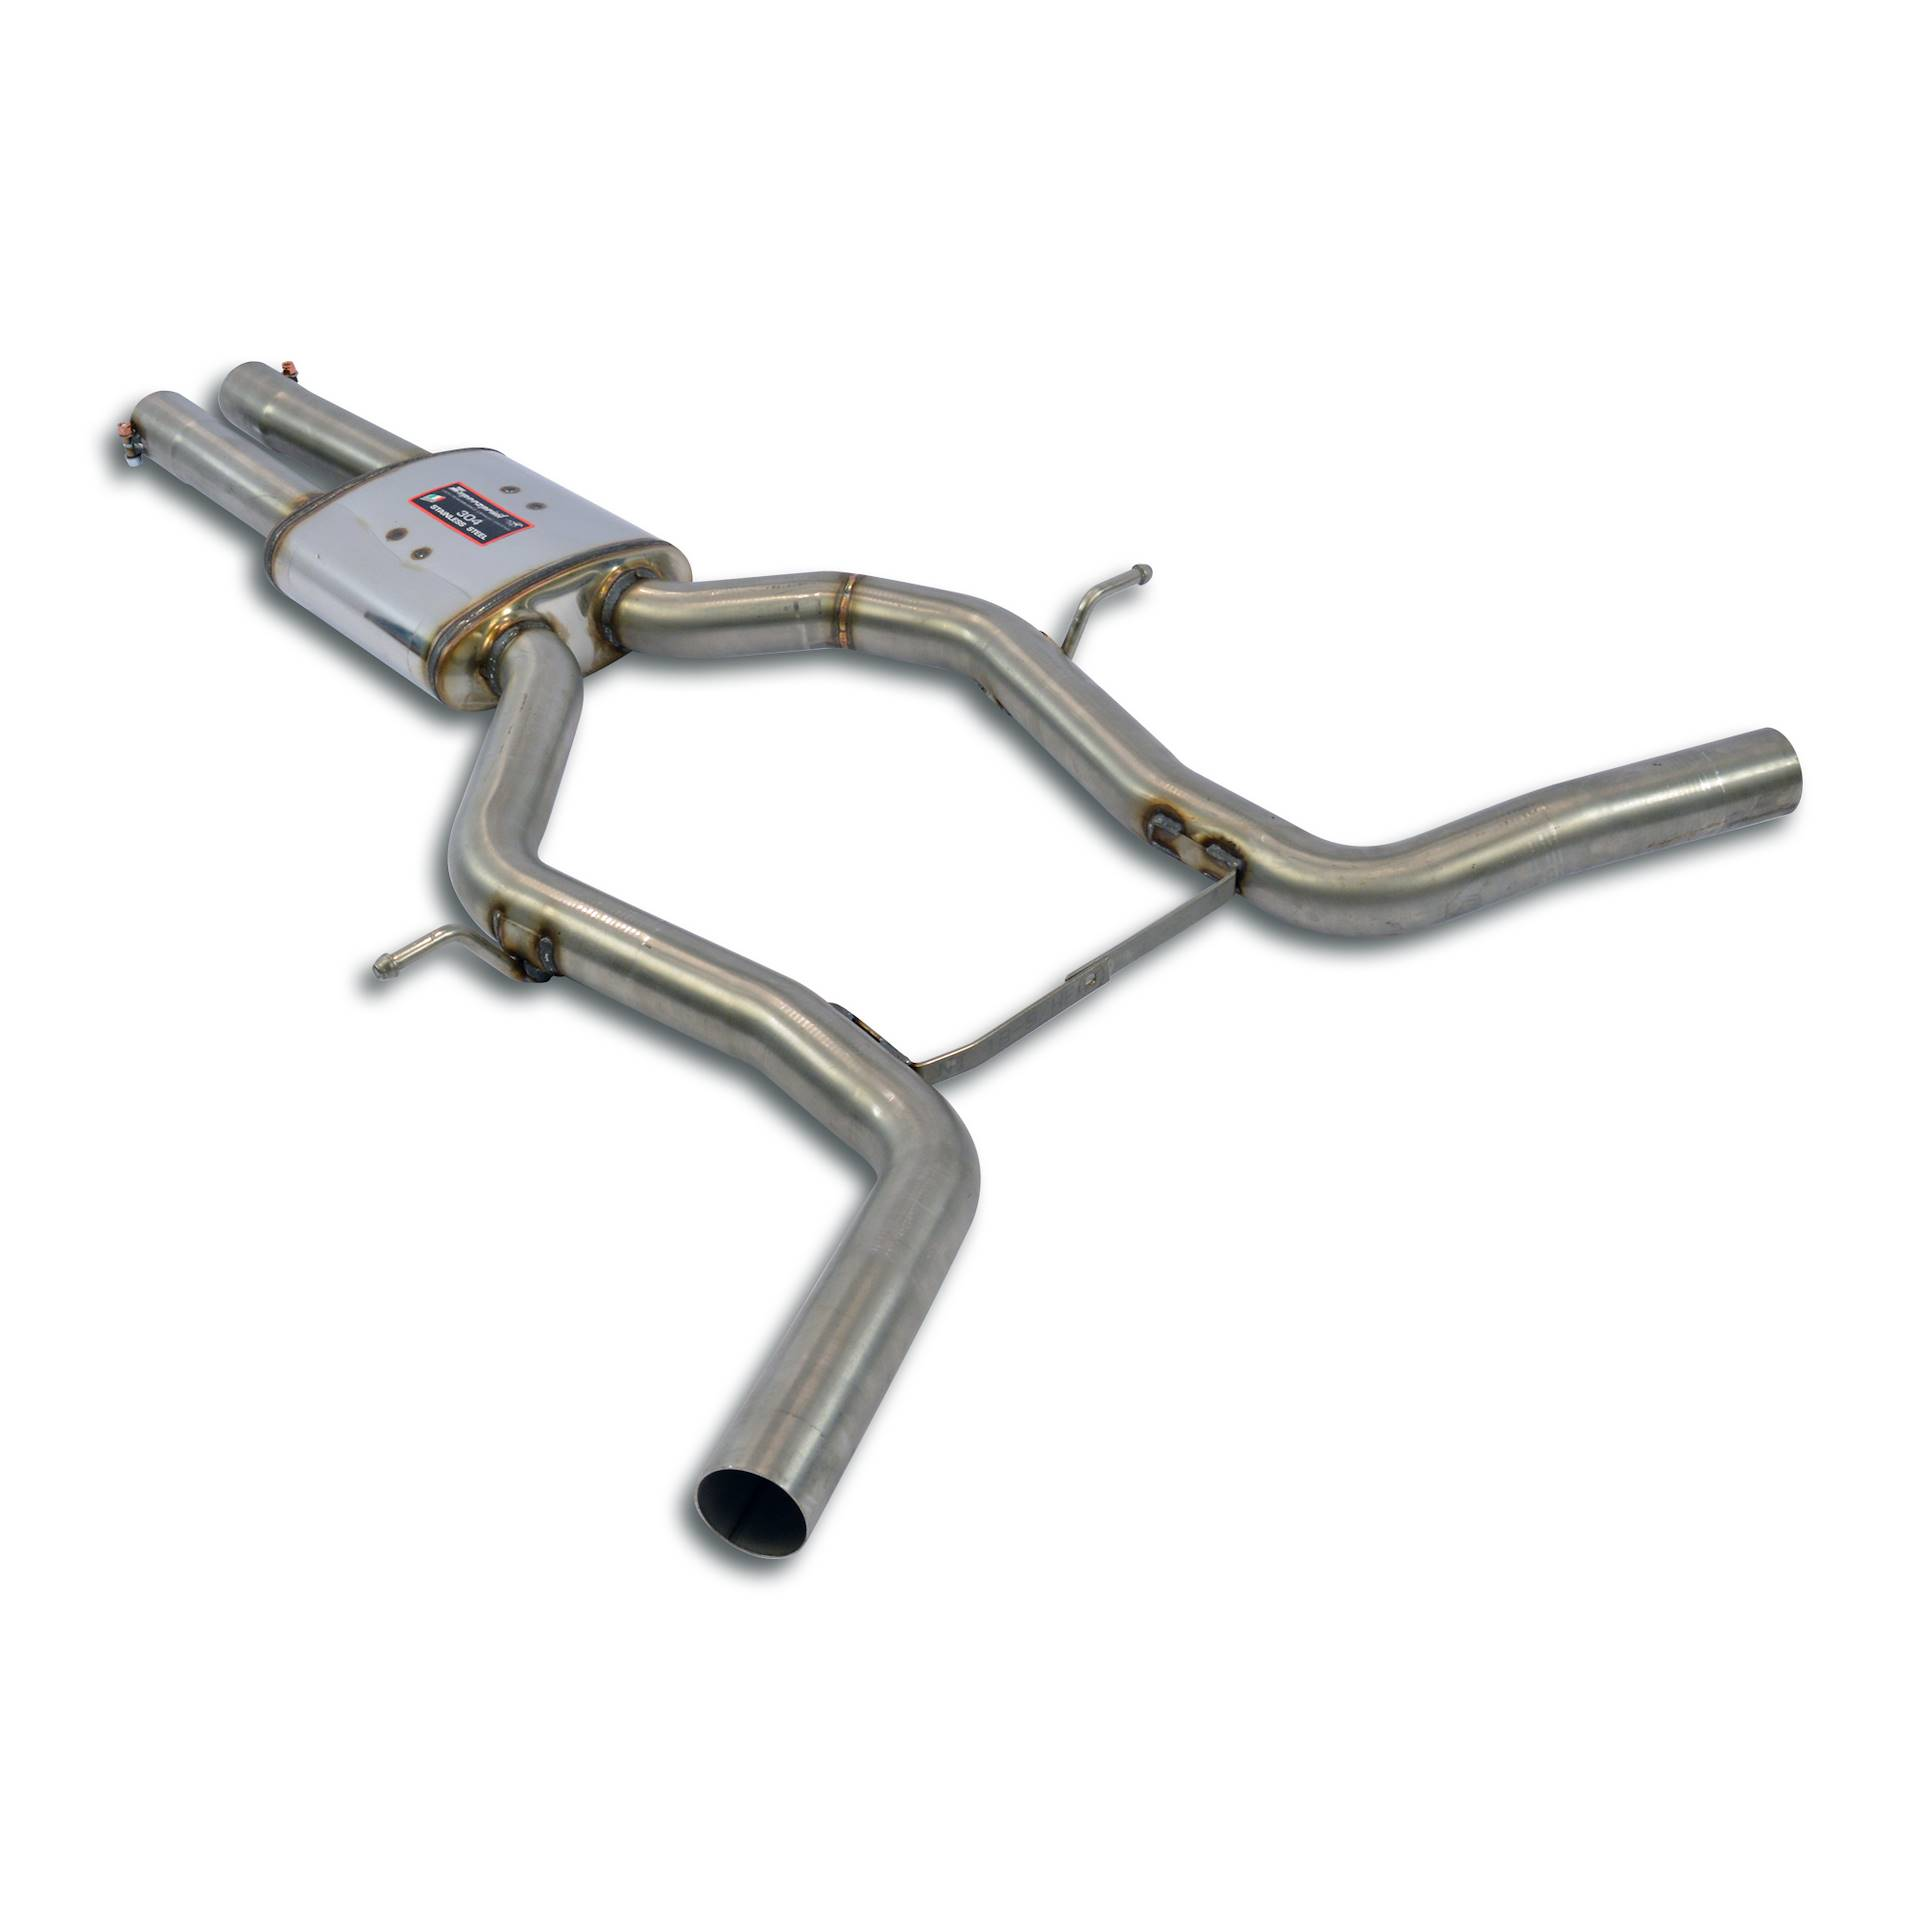 Mercedes - MERCEDES C219 CLS 280 V6 (M272  3.0L - 231 Hp) 2008 -> 2009 Centre exhaust Right - Left, performance exhaust systems